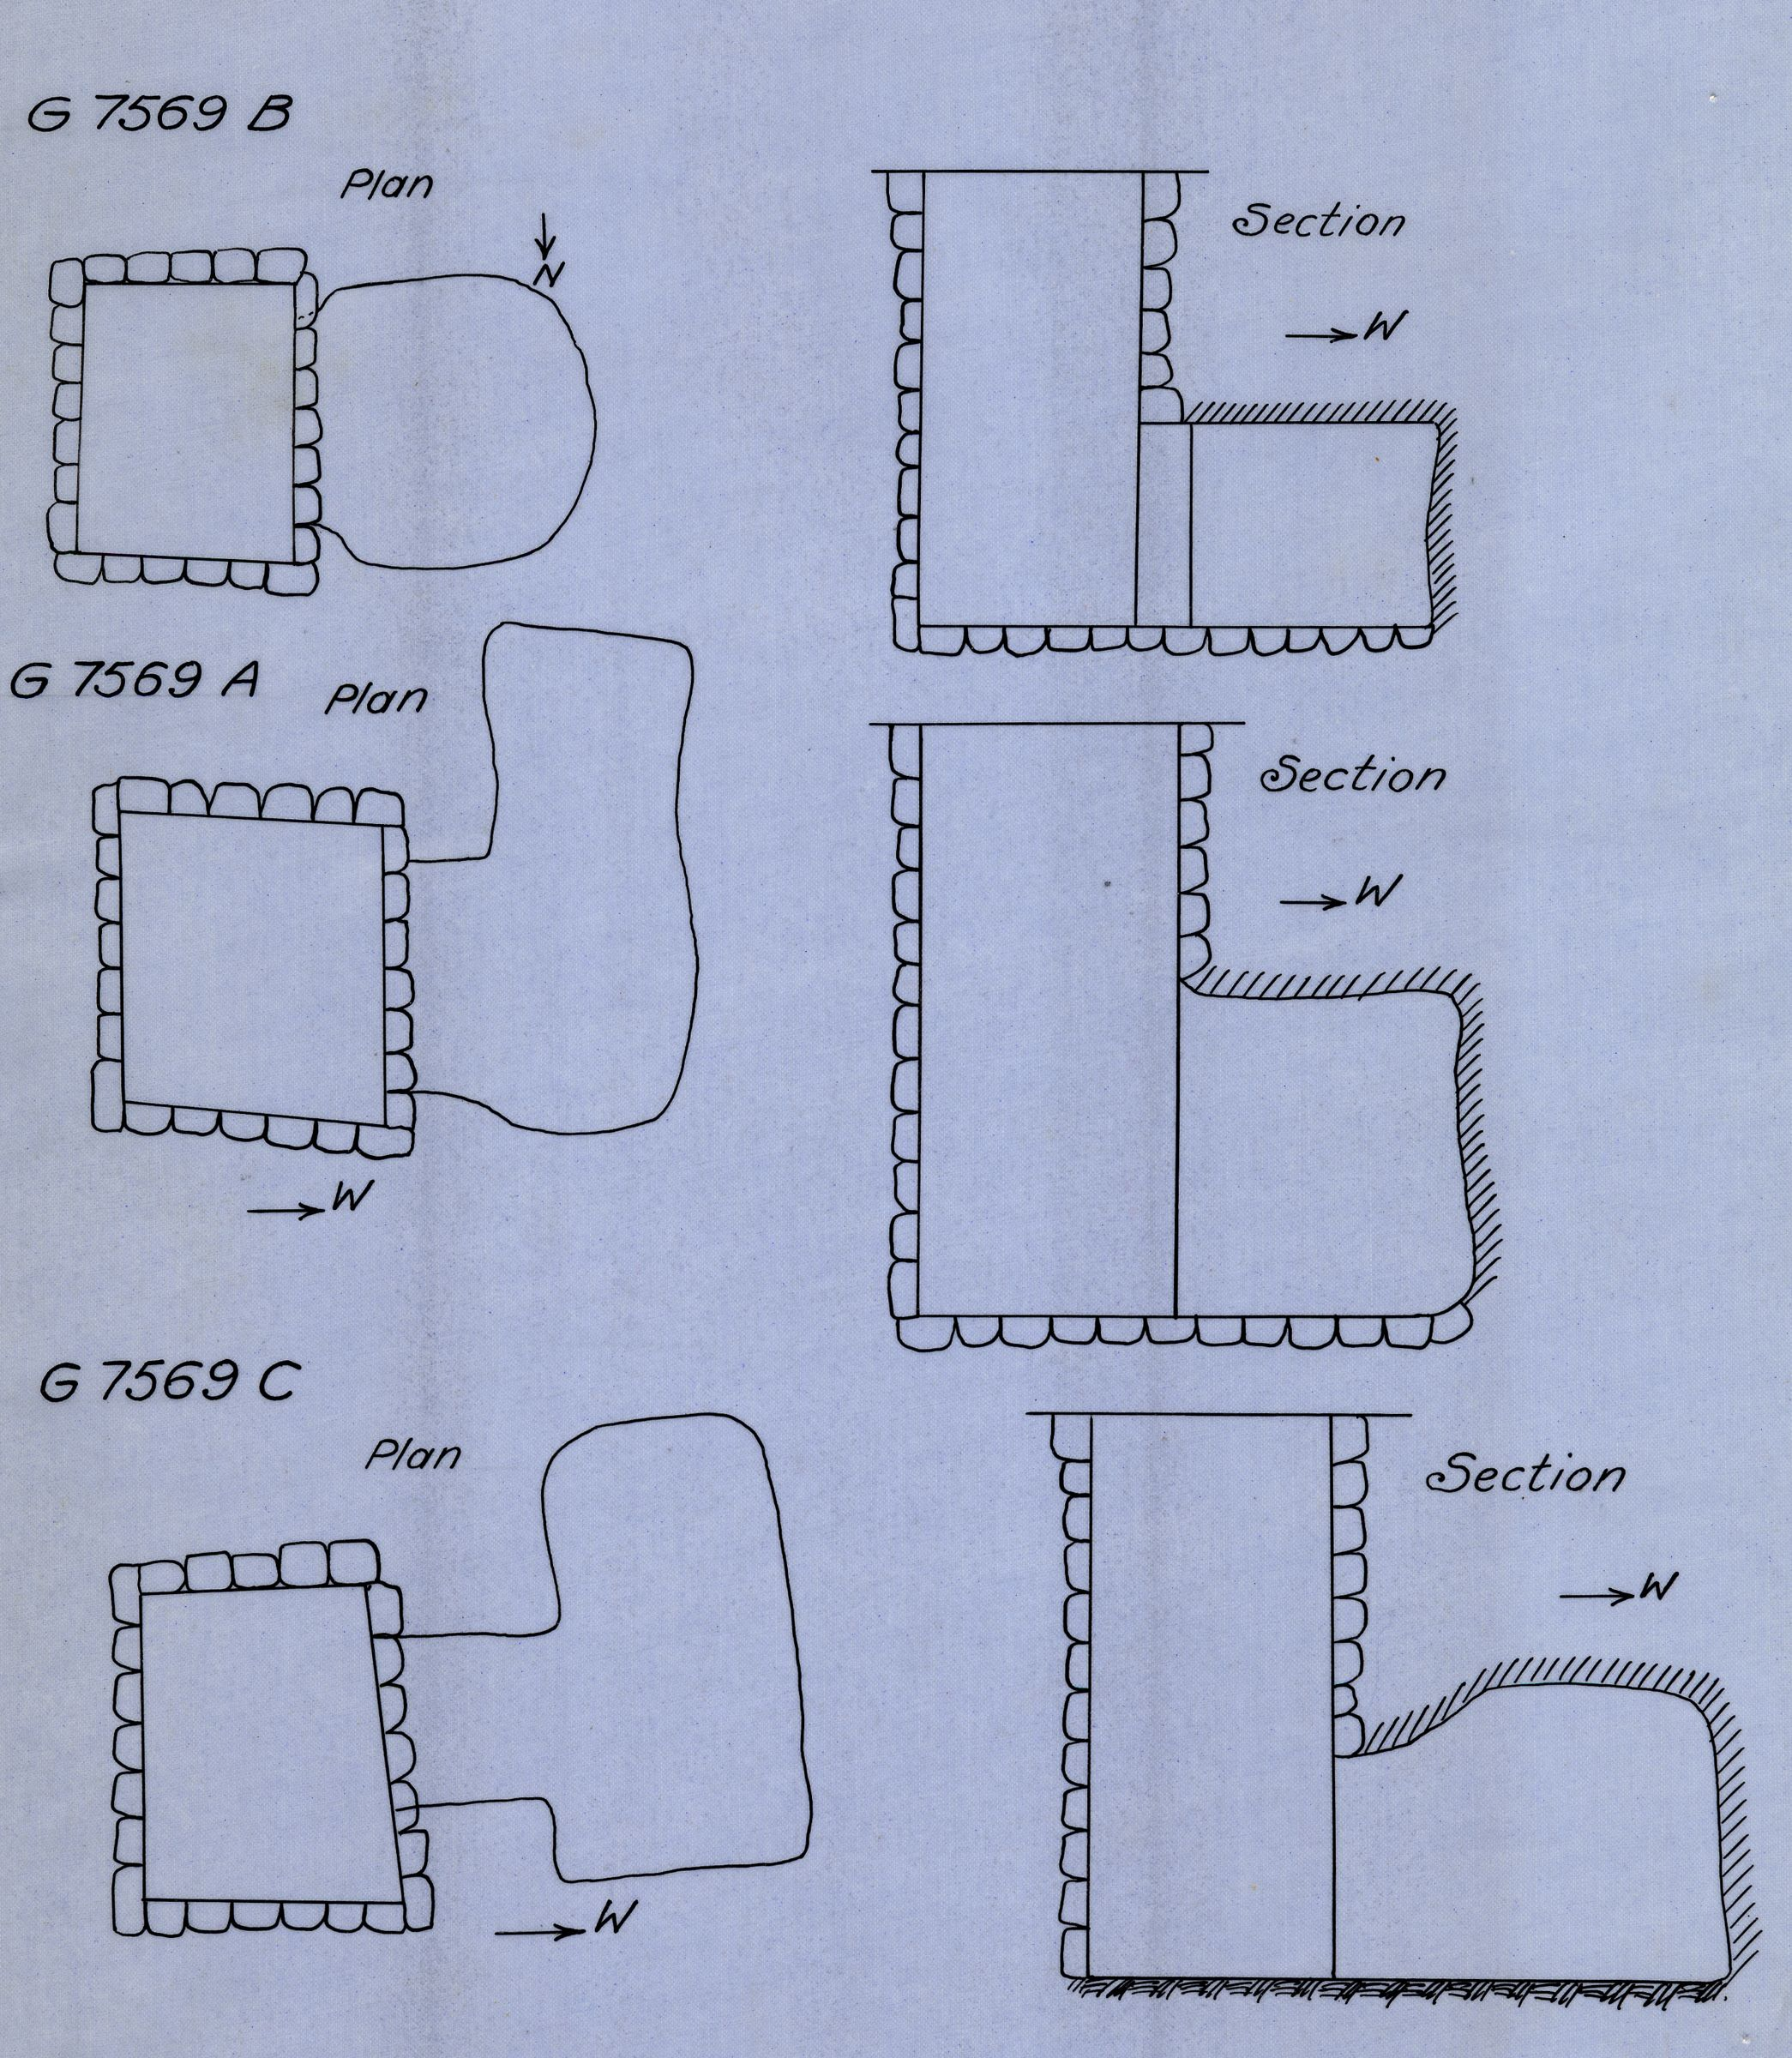 Maps and plans: G 7569, Shaft A, B, C